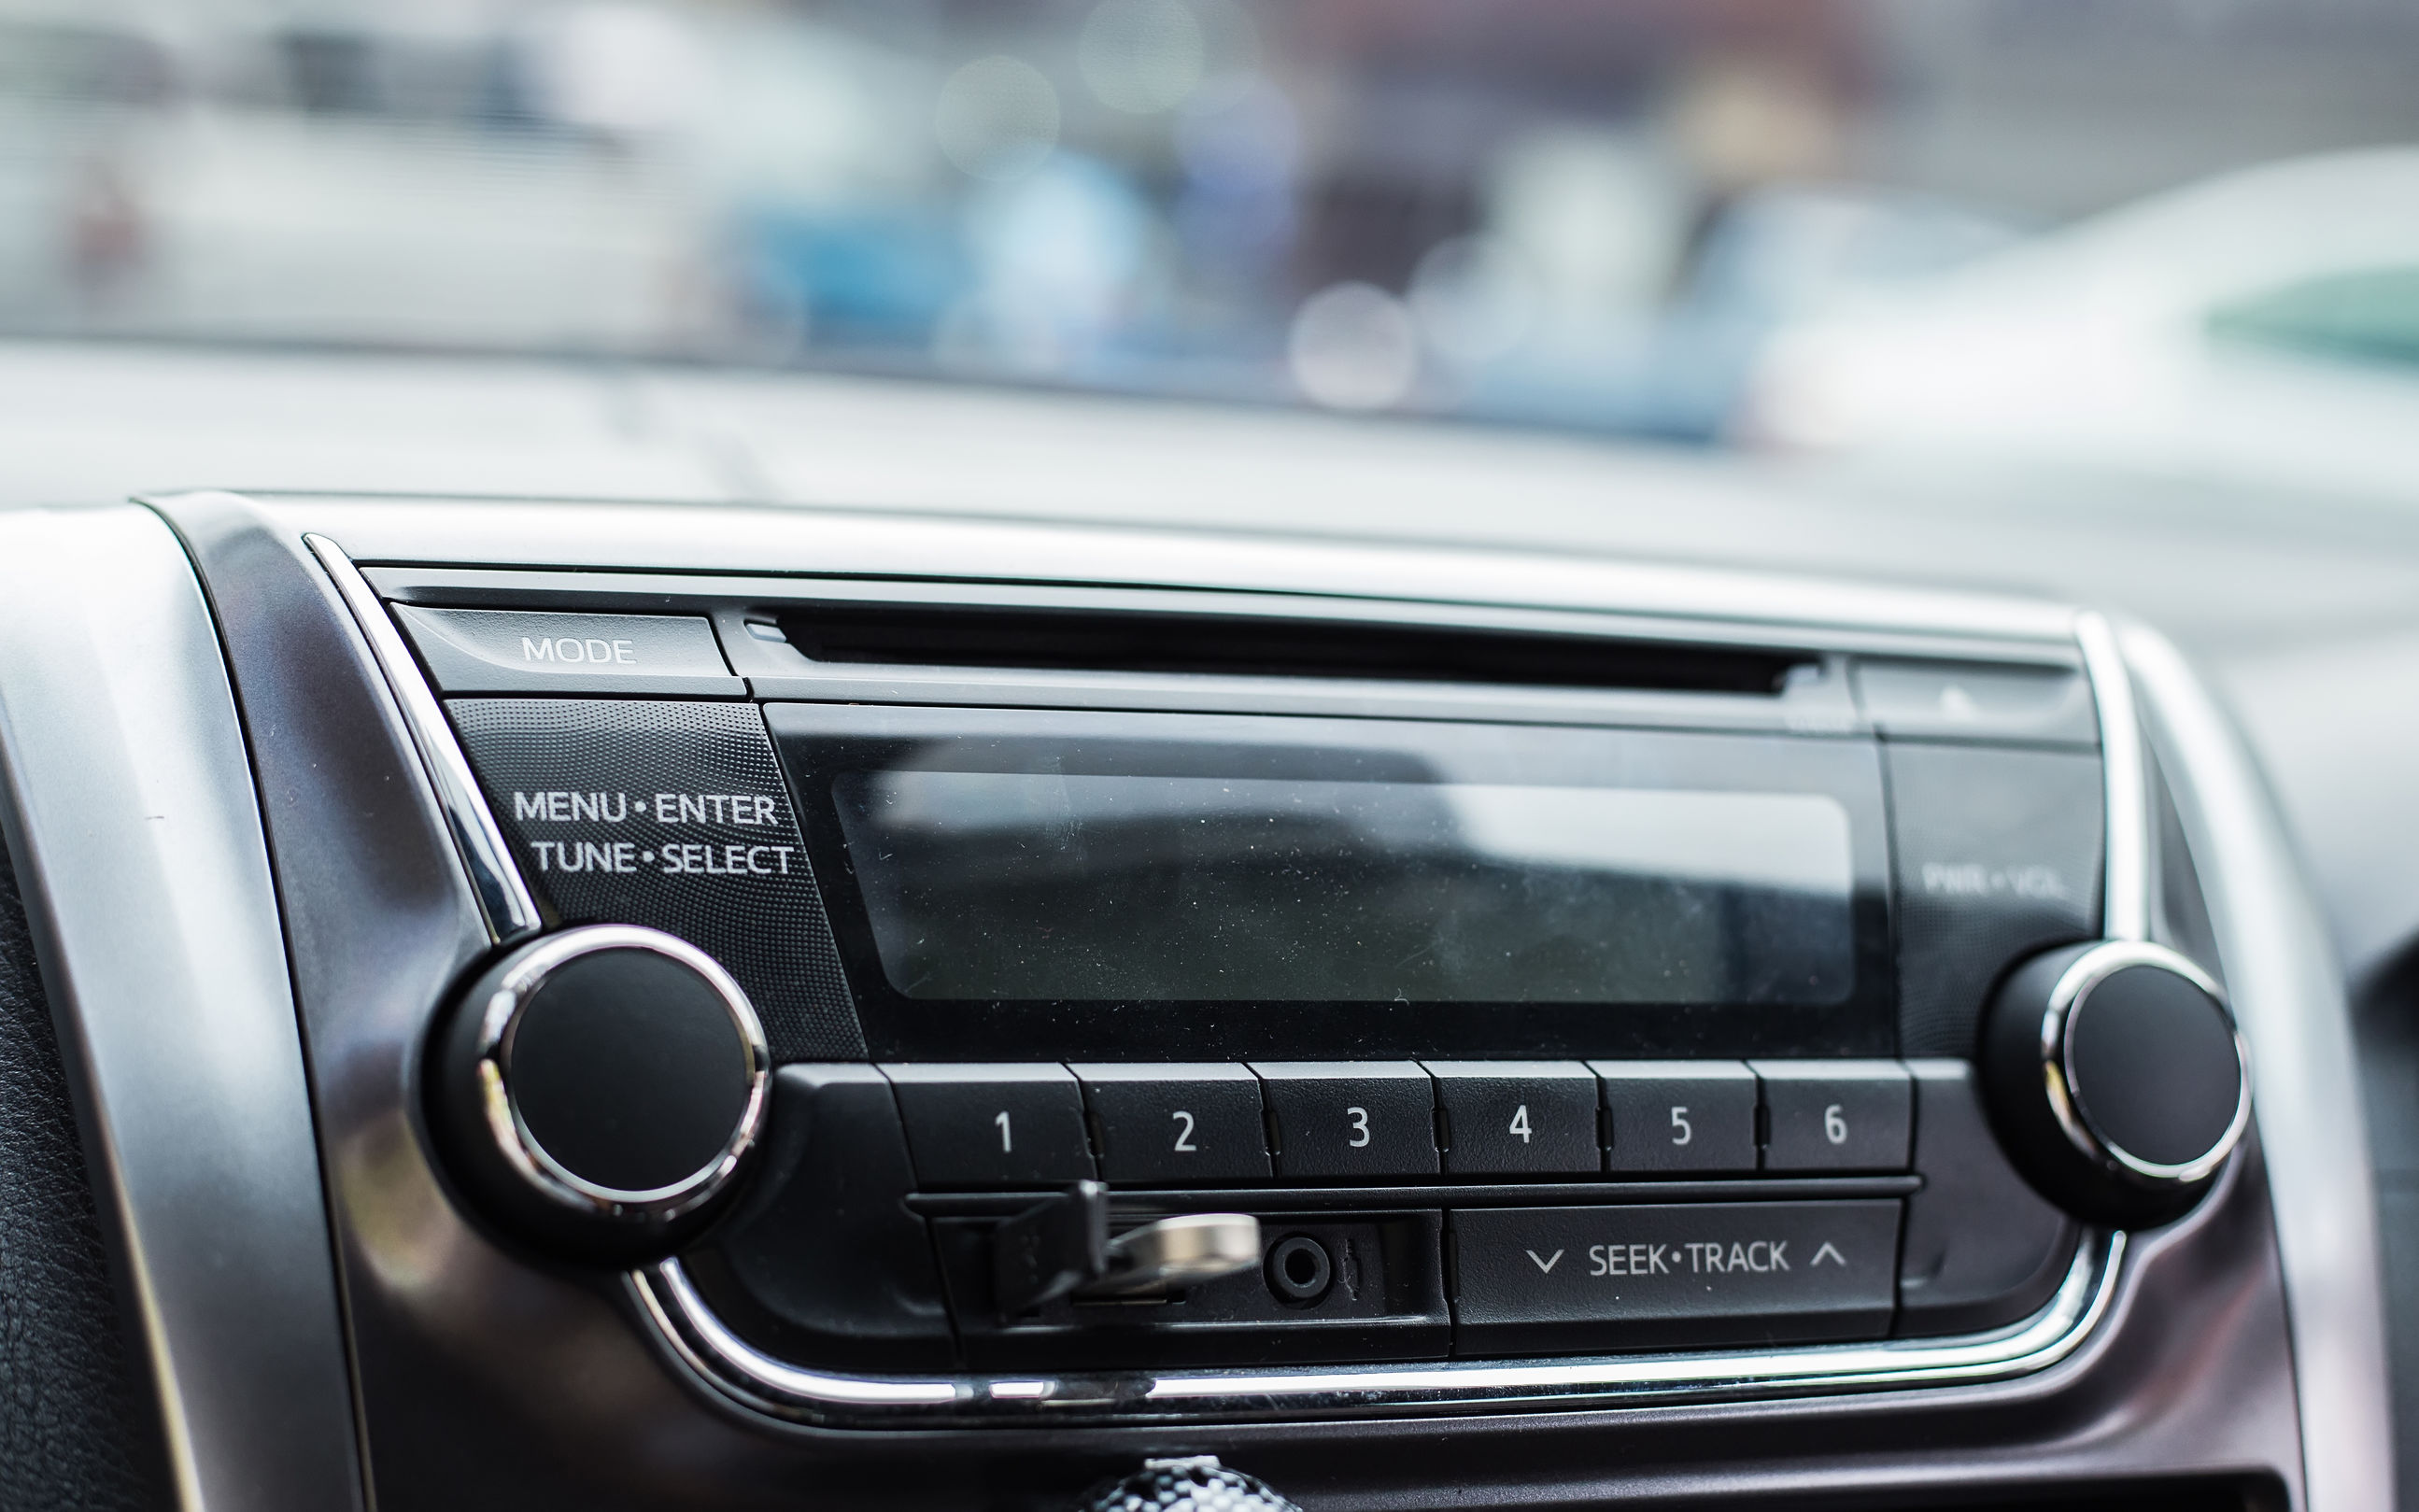 Improving Car Audio Five Simple Tips For Better Music Torque